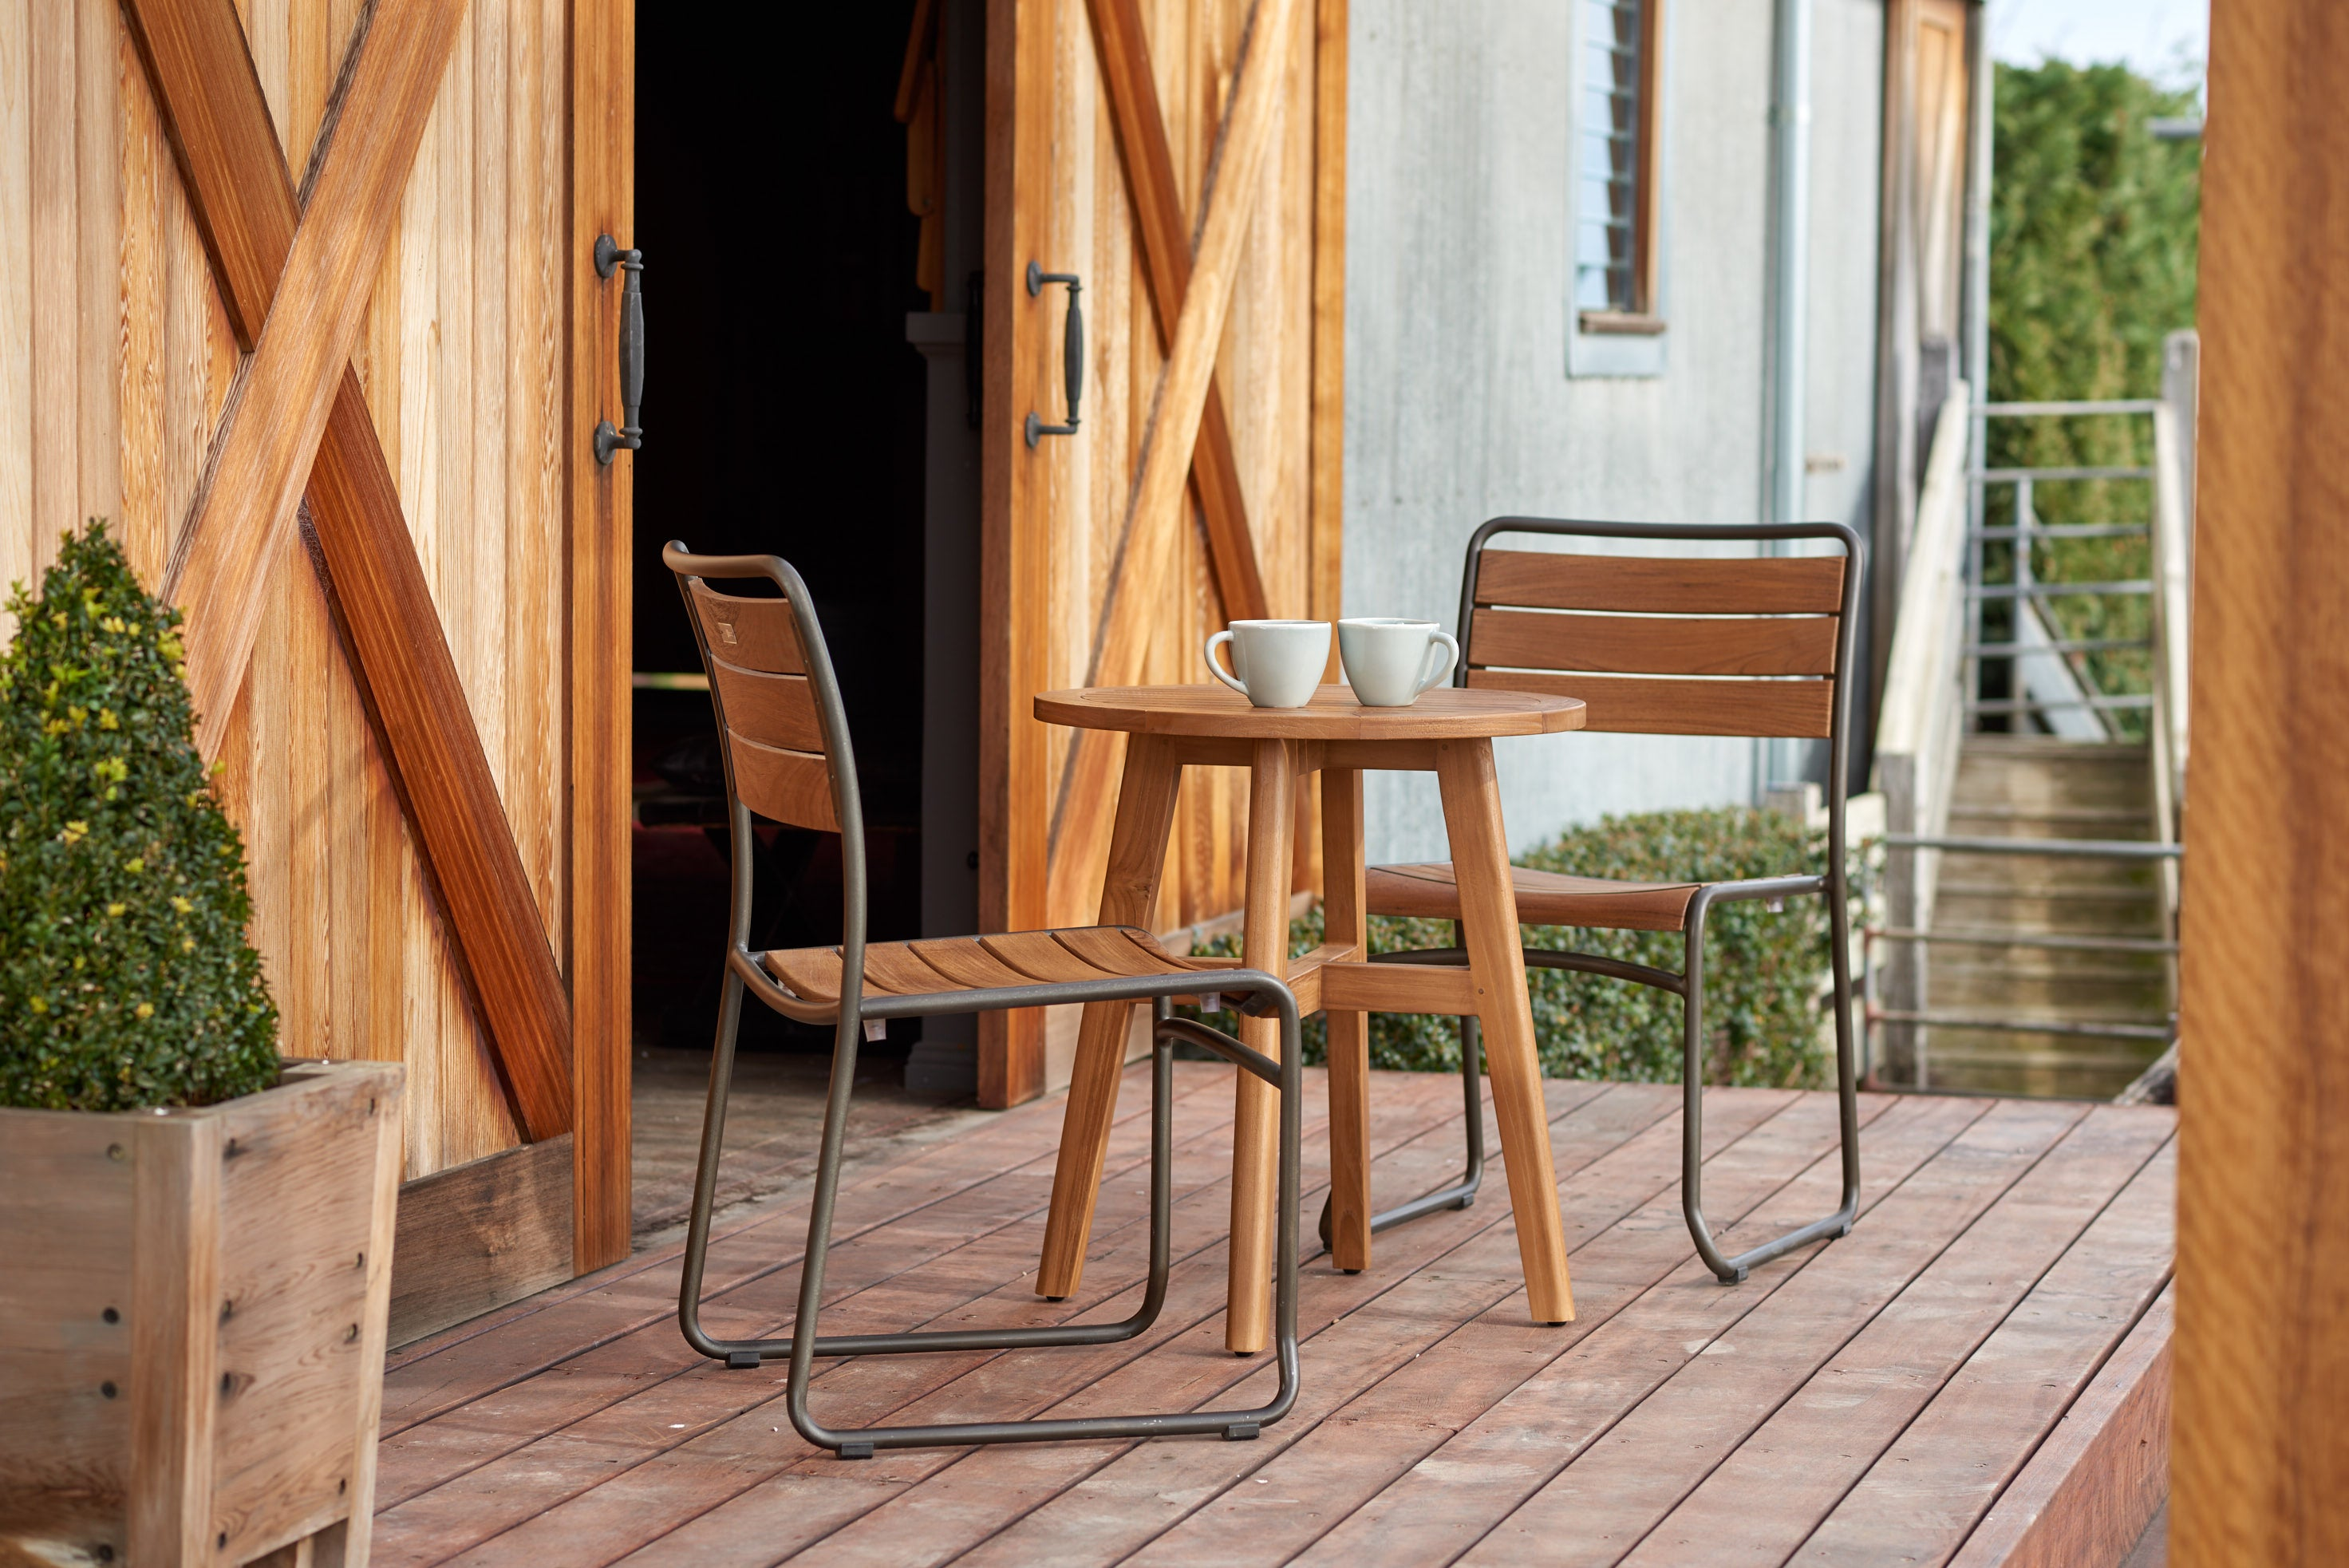 Sorrento chair + sorrento bisto table